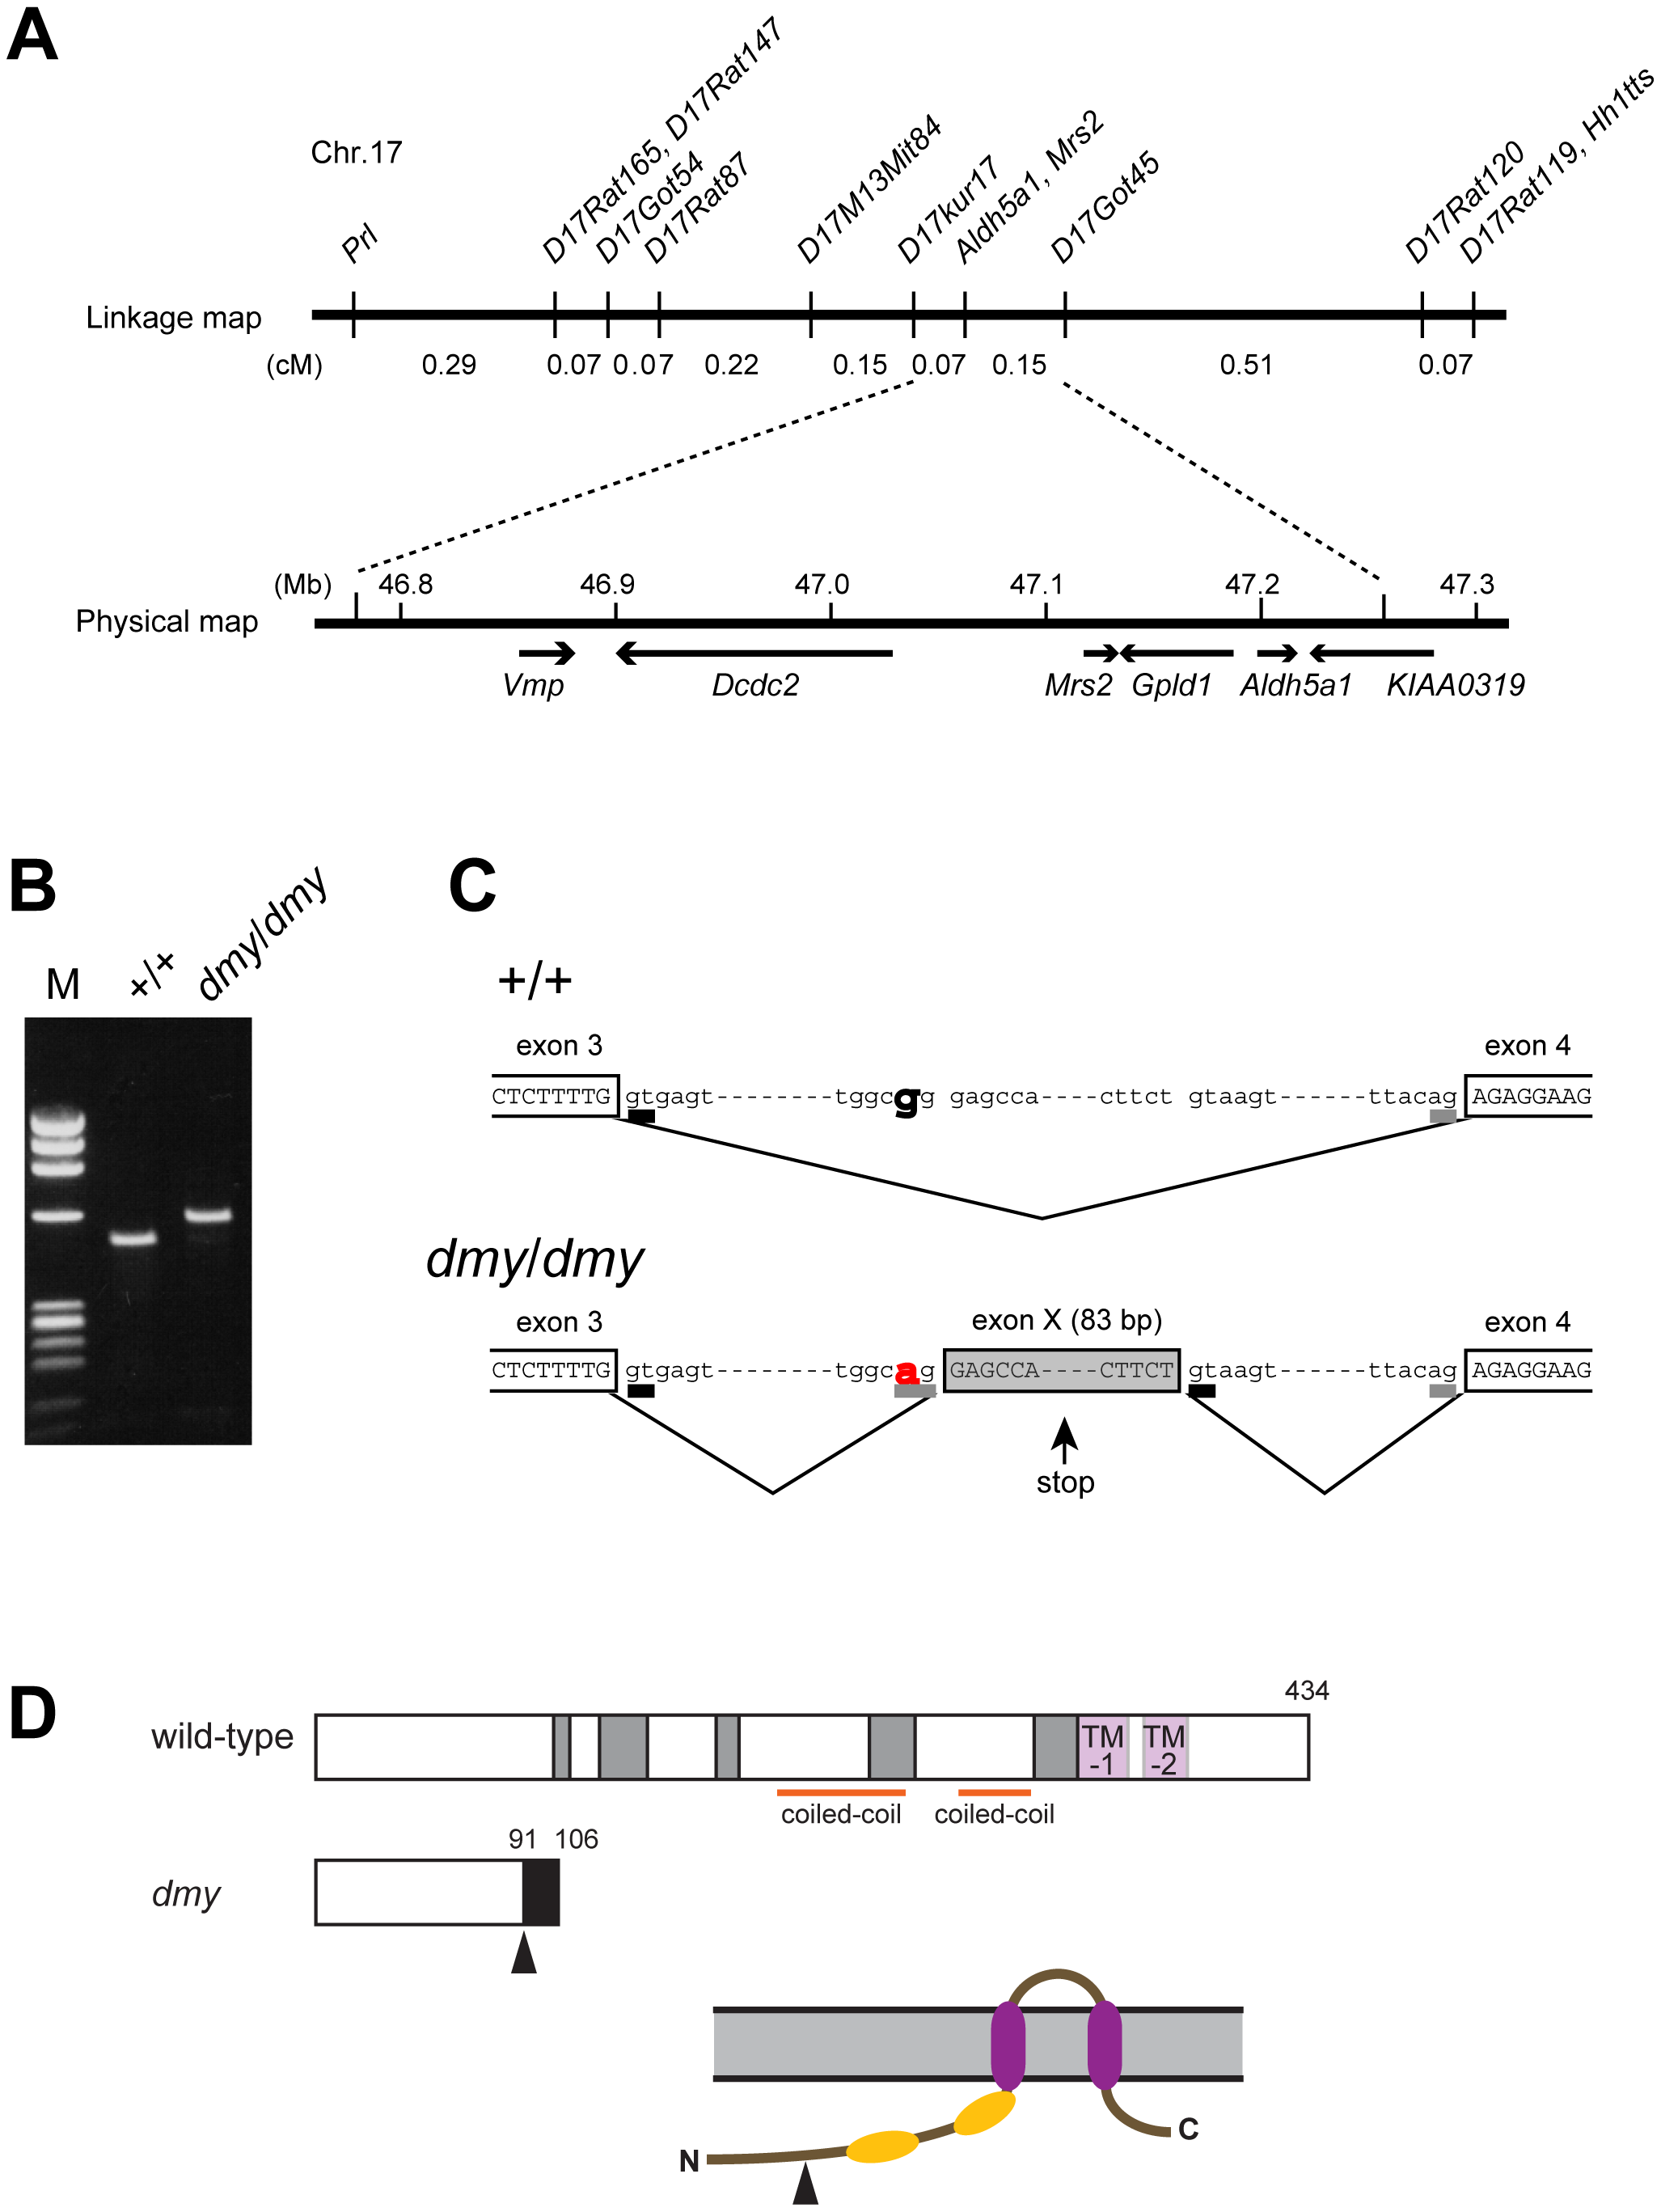 Positional cloning of the <i>dmy</i> mutation.